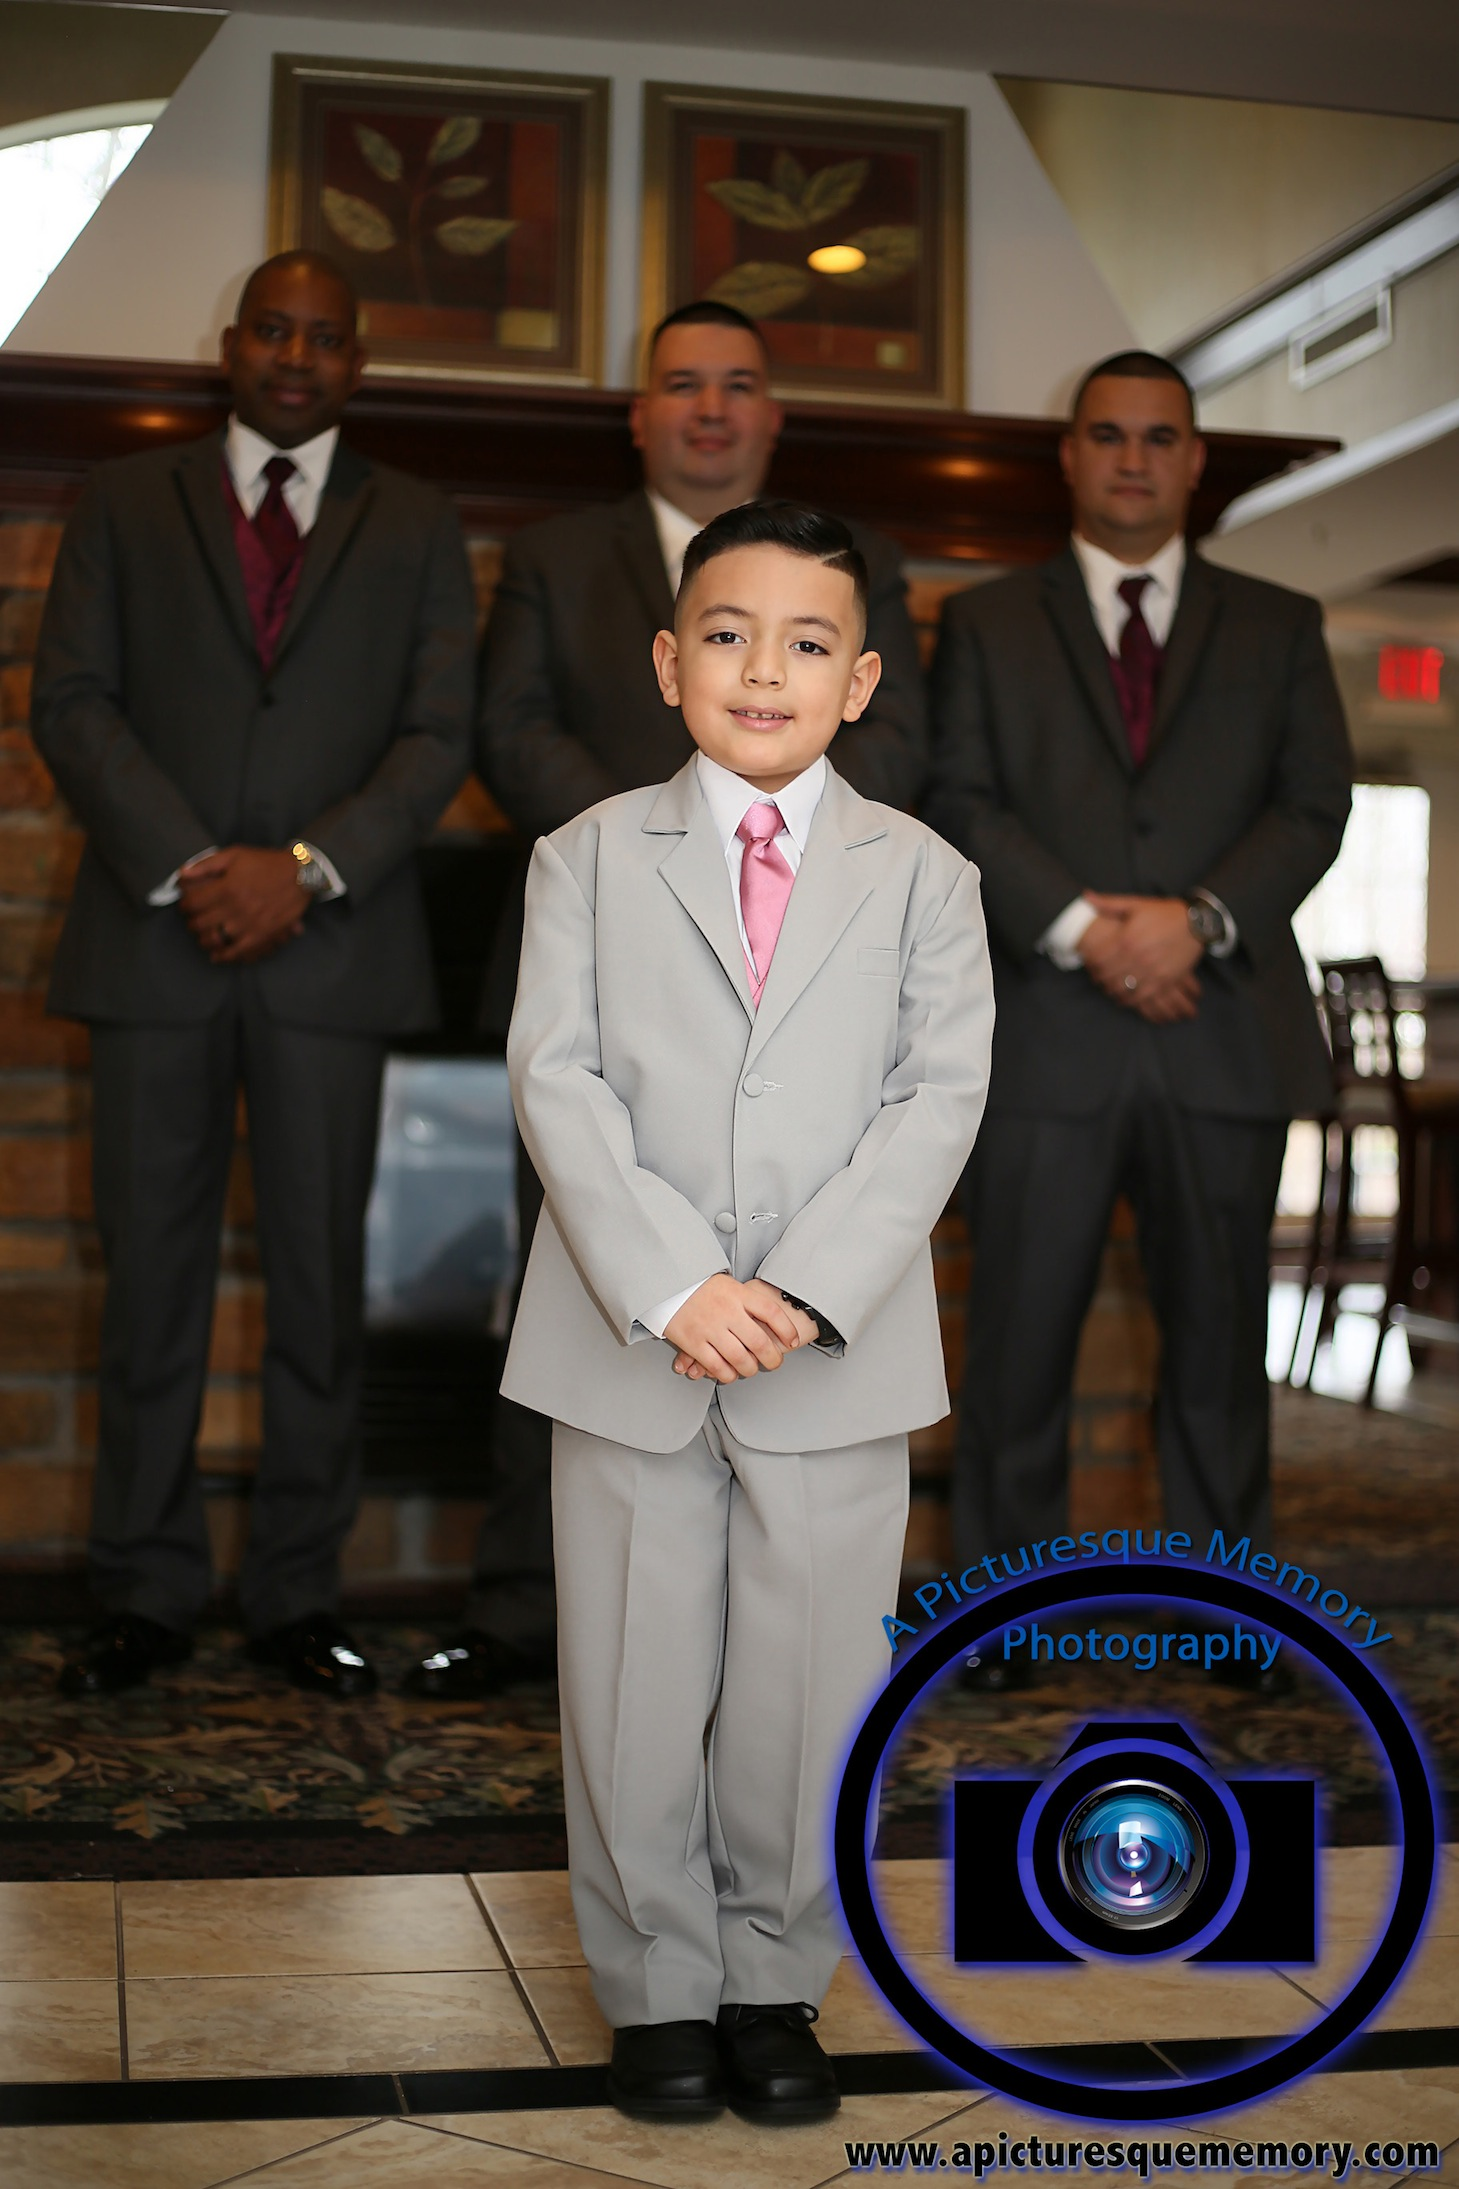 #njwedding, #njweddingphotography, #northbrunswickweddingphotographer#weddingphotos, #apicturesquememoryphotography, #staybridgesuitesweddingphotographer, #ringbearer, #greysuits